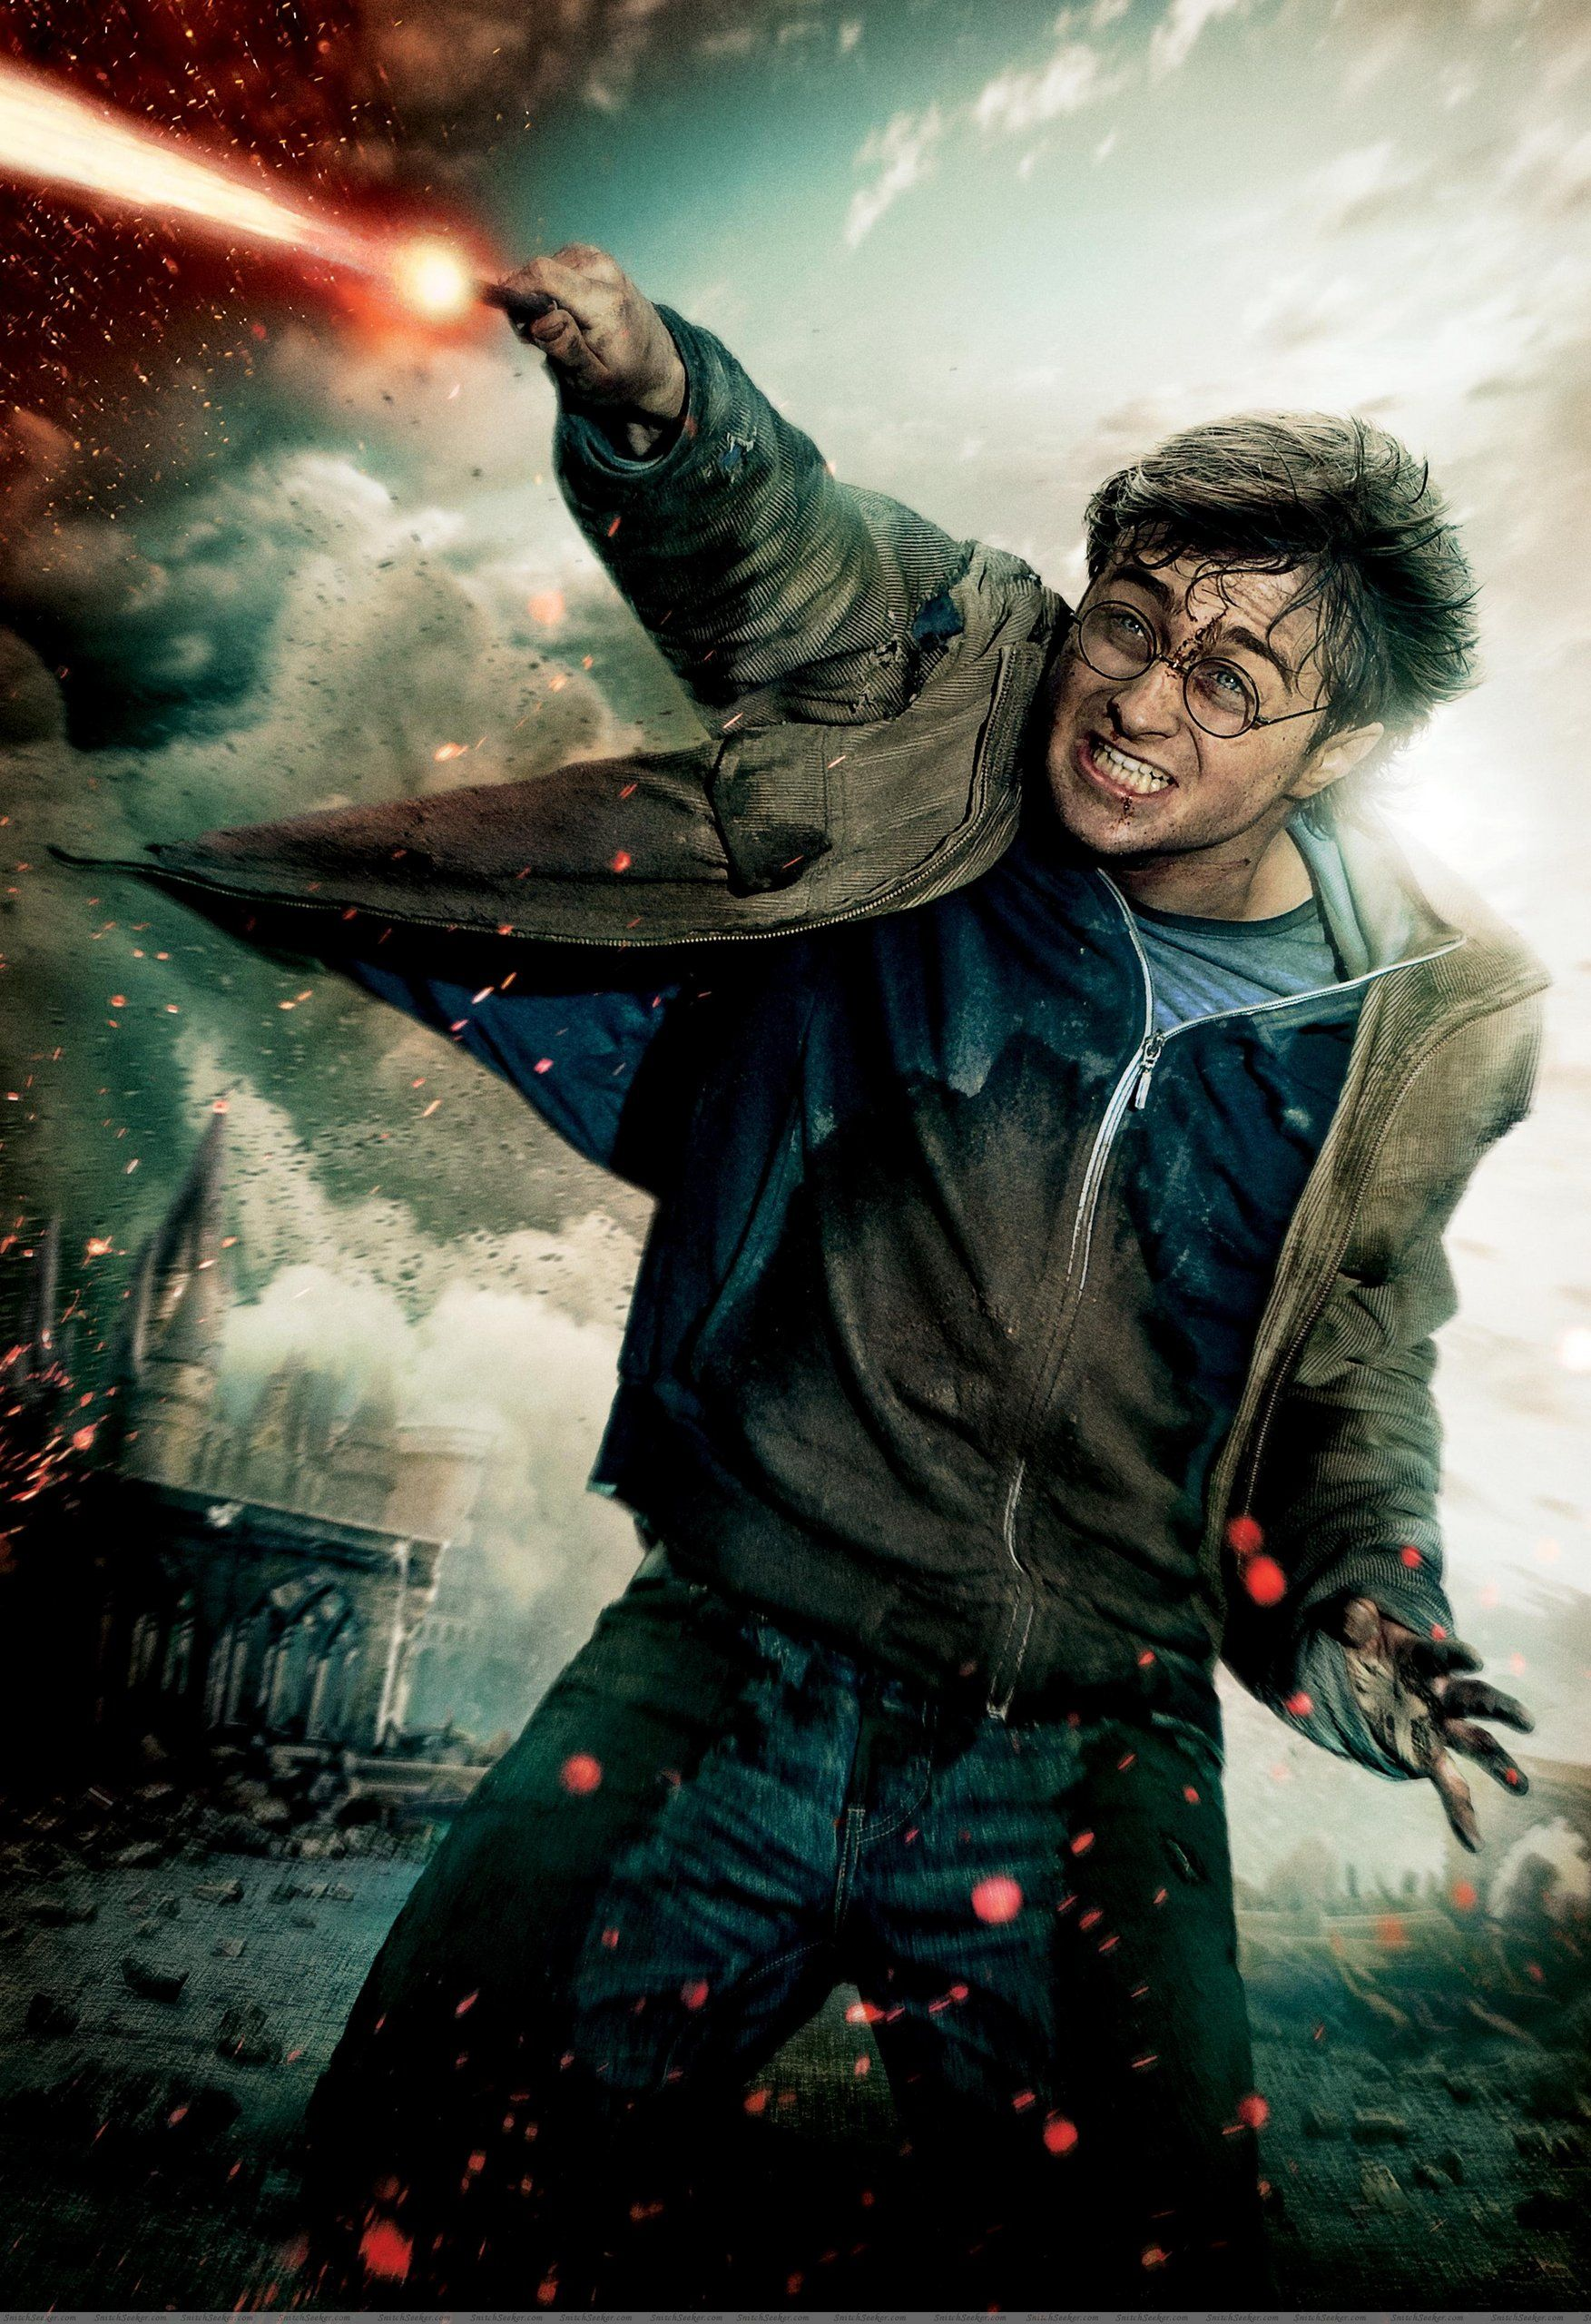 Pin By Moneypenny On Harry Potter Harry Potter Spells Harry Potter Characters Harry Potter Poster